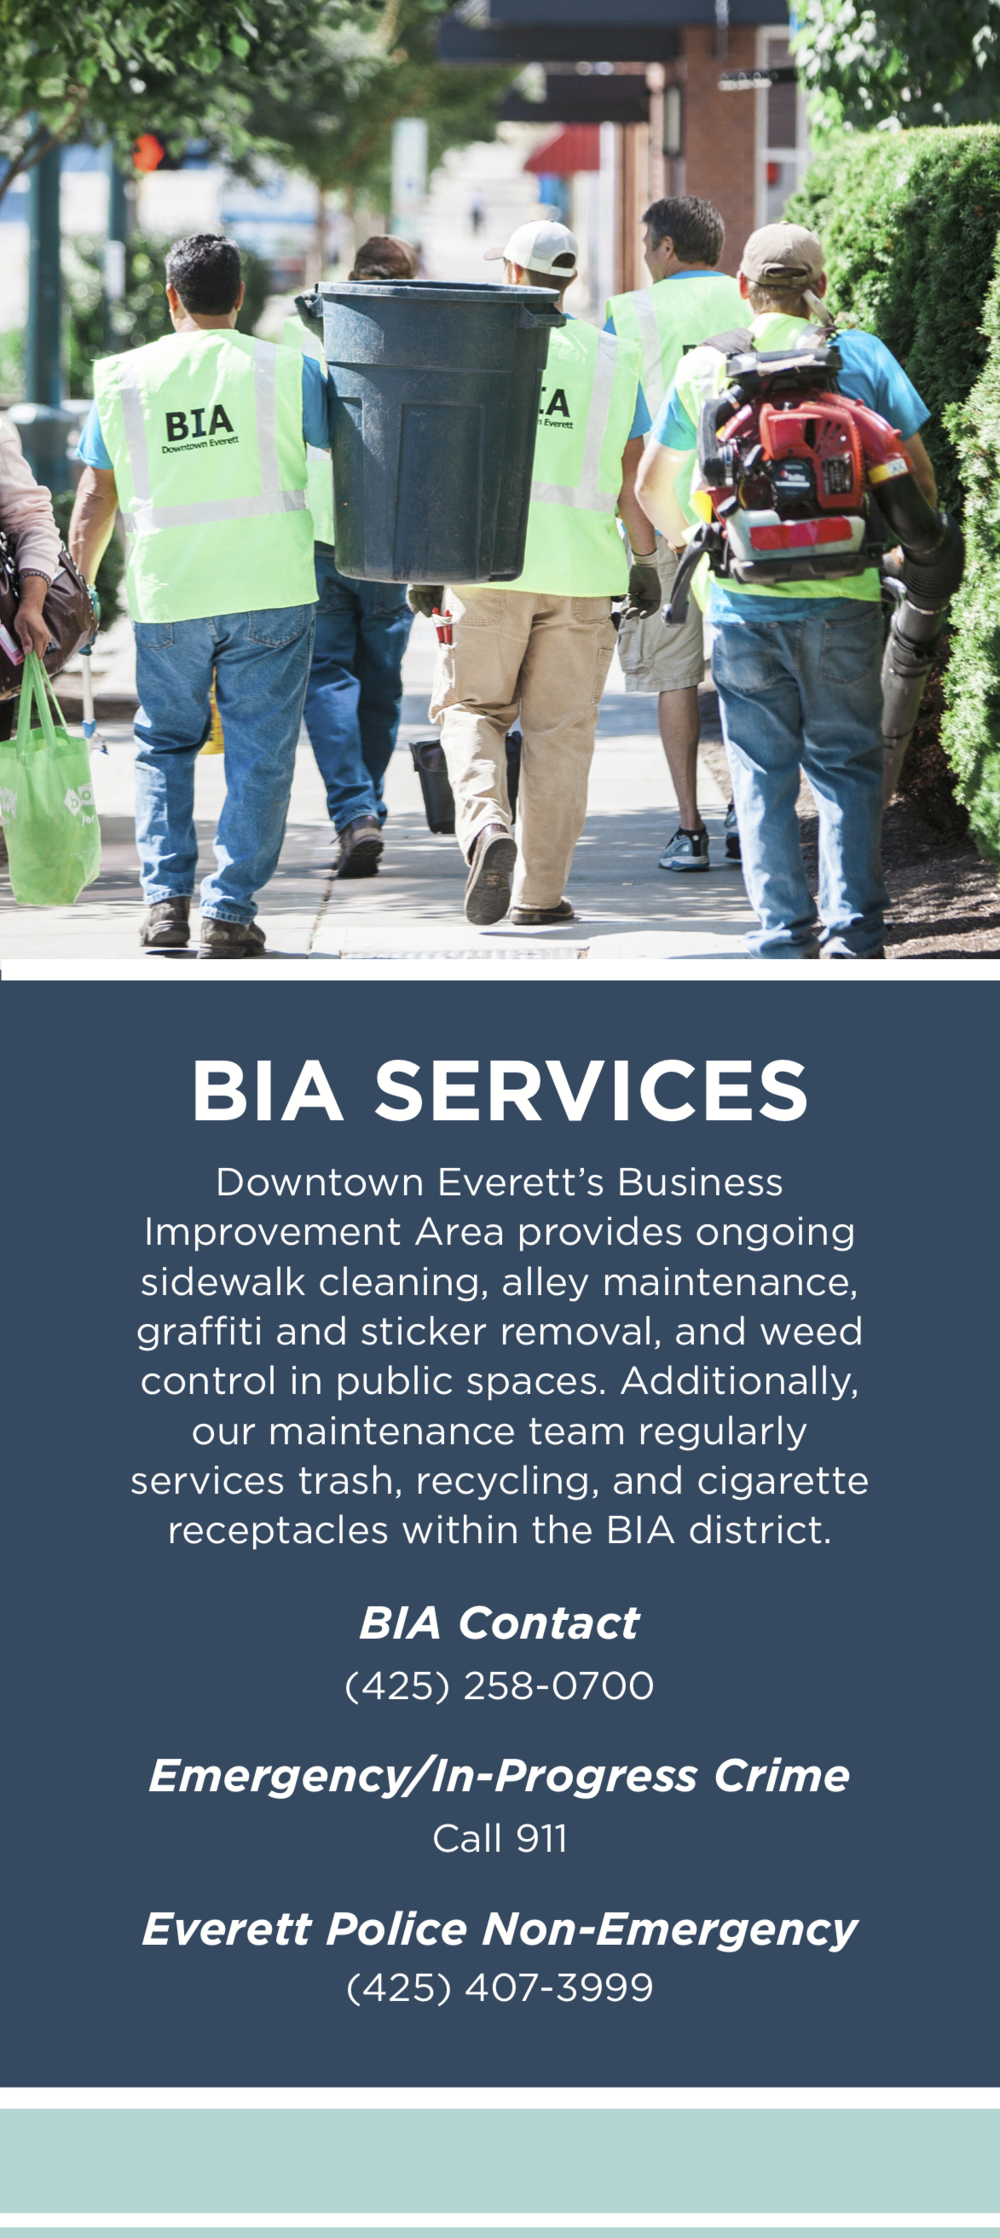 DEA & BIA Services Card